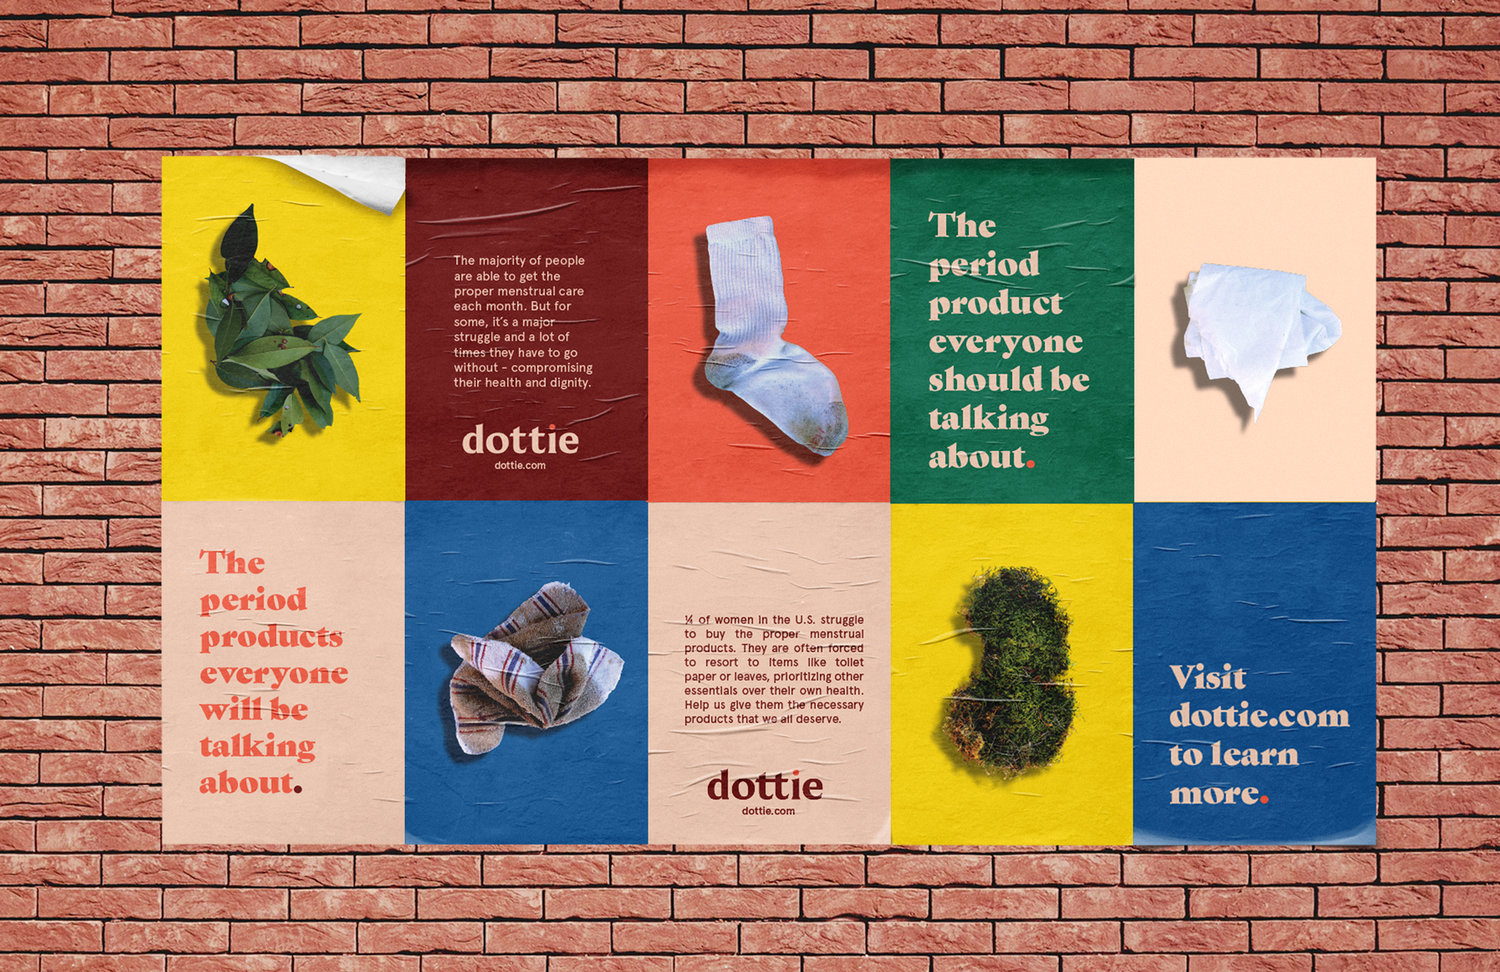 ads that demand a closer look - Upon first look, dottie will appear to promote low-quality menstrual products, like moss and leaves, with a sleek, high-end visual style.Closer inspection of dottie's ads reveals the true message: these unhygienic alternatives are the norm for many menstruators.